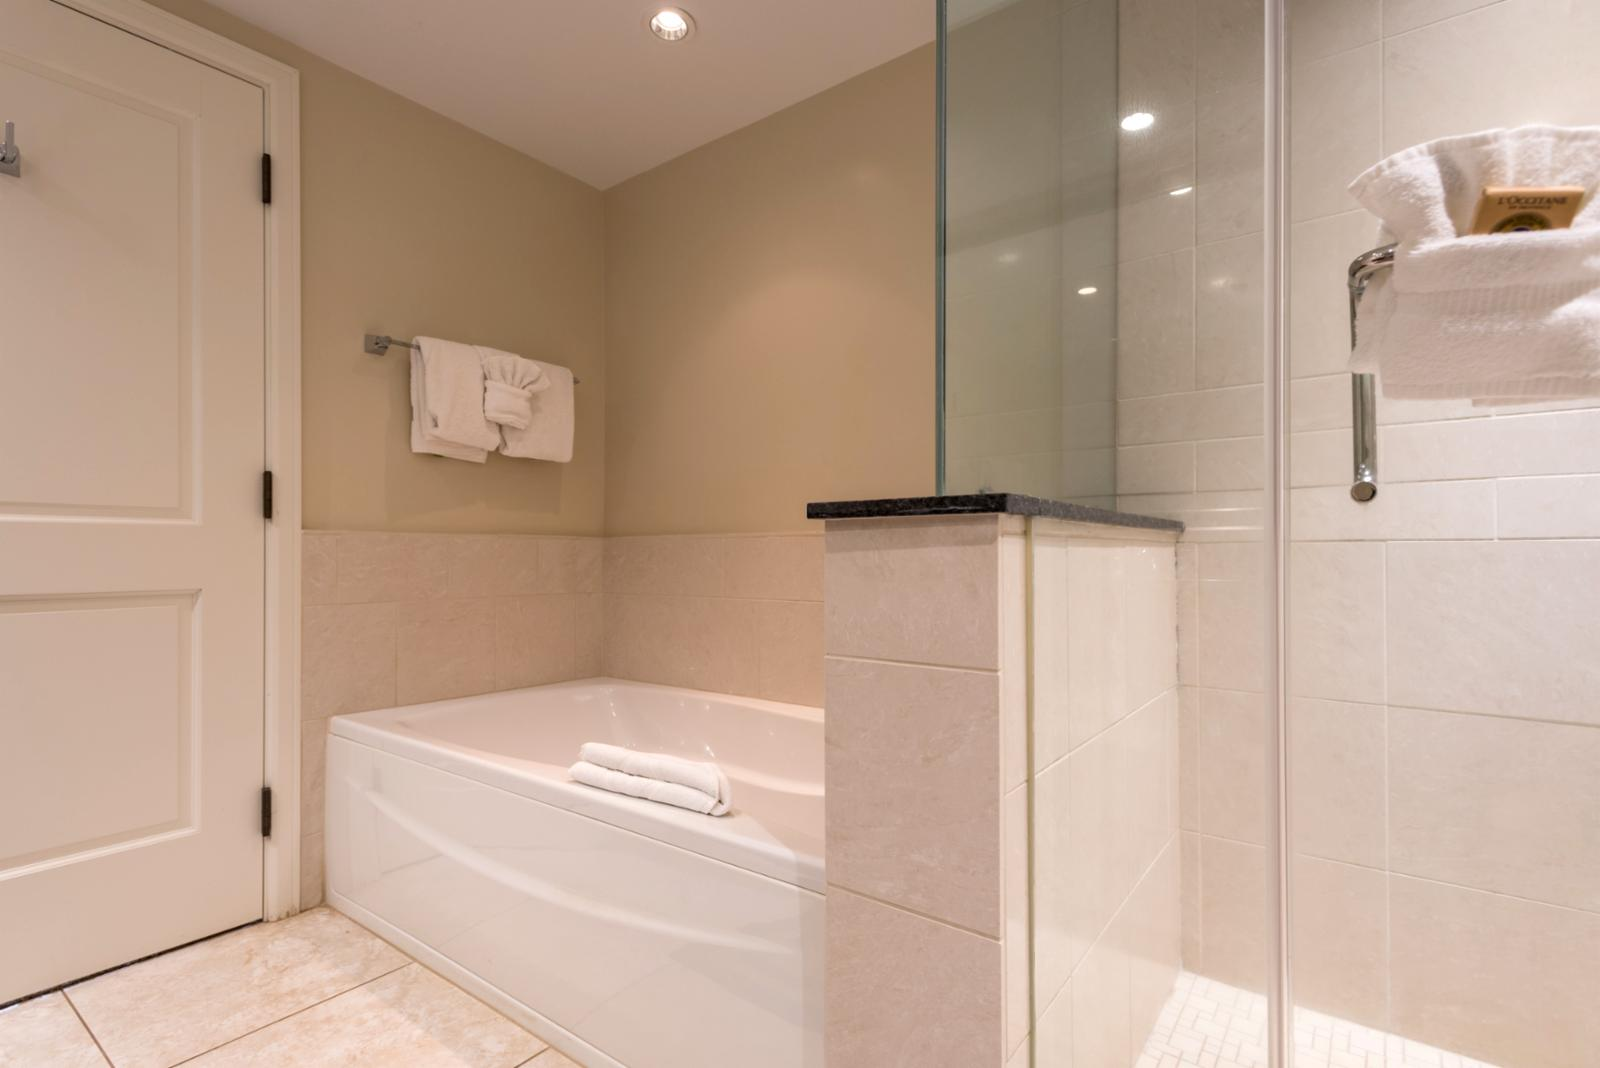 Guest bath reverse angle